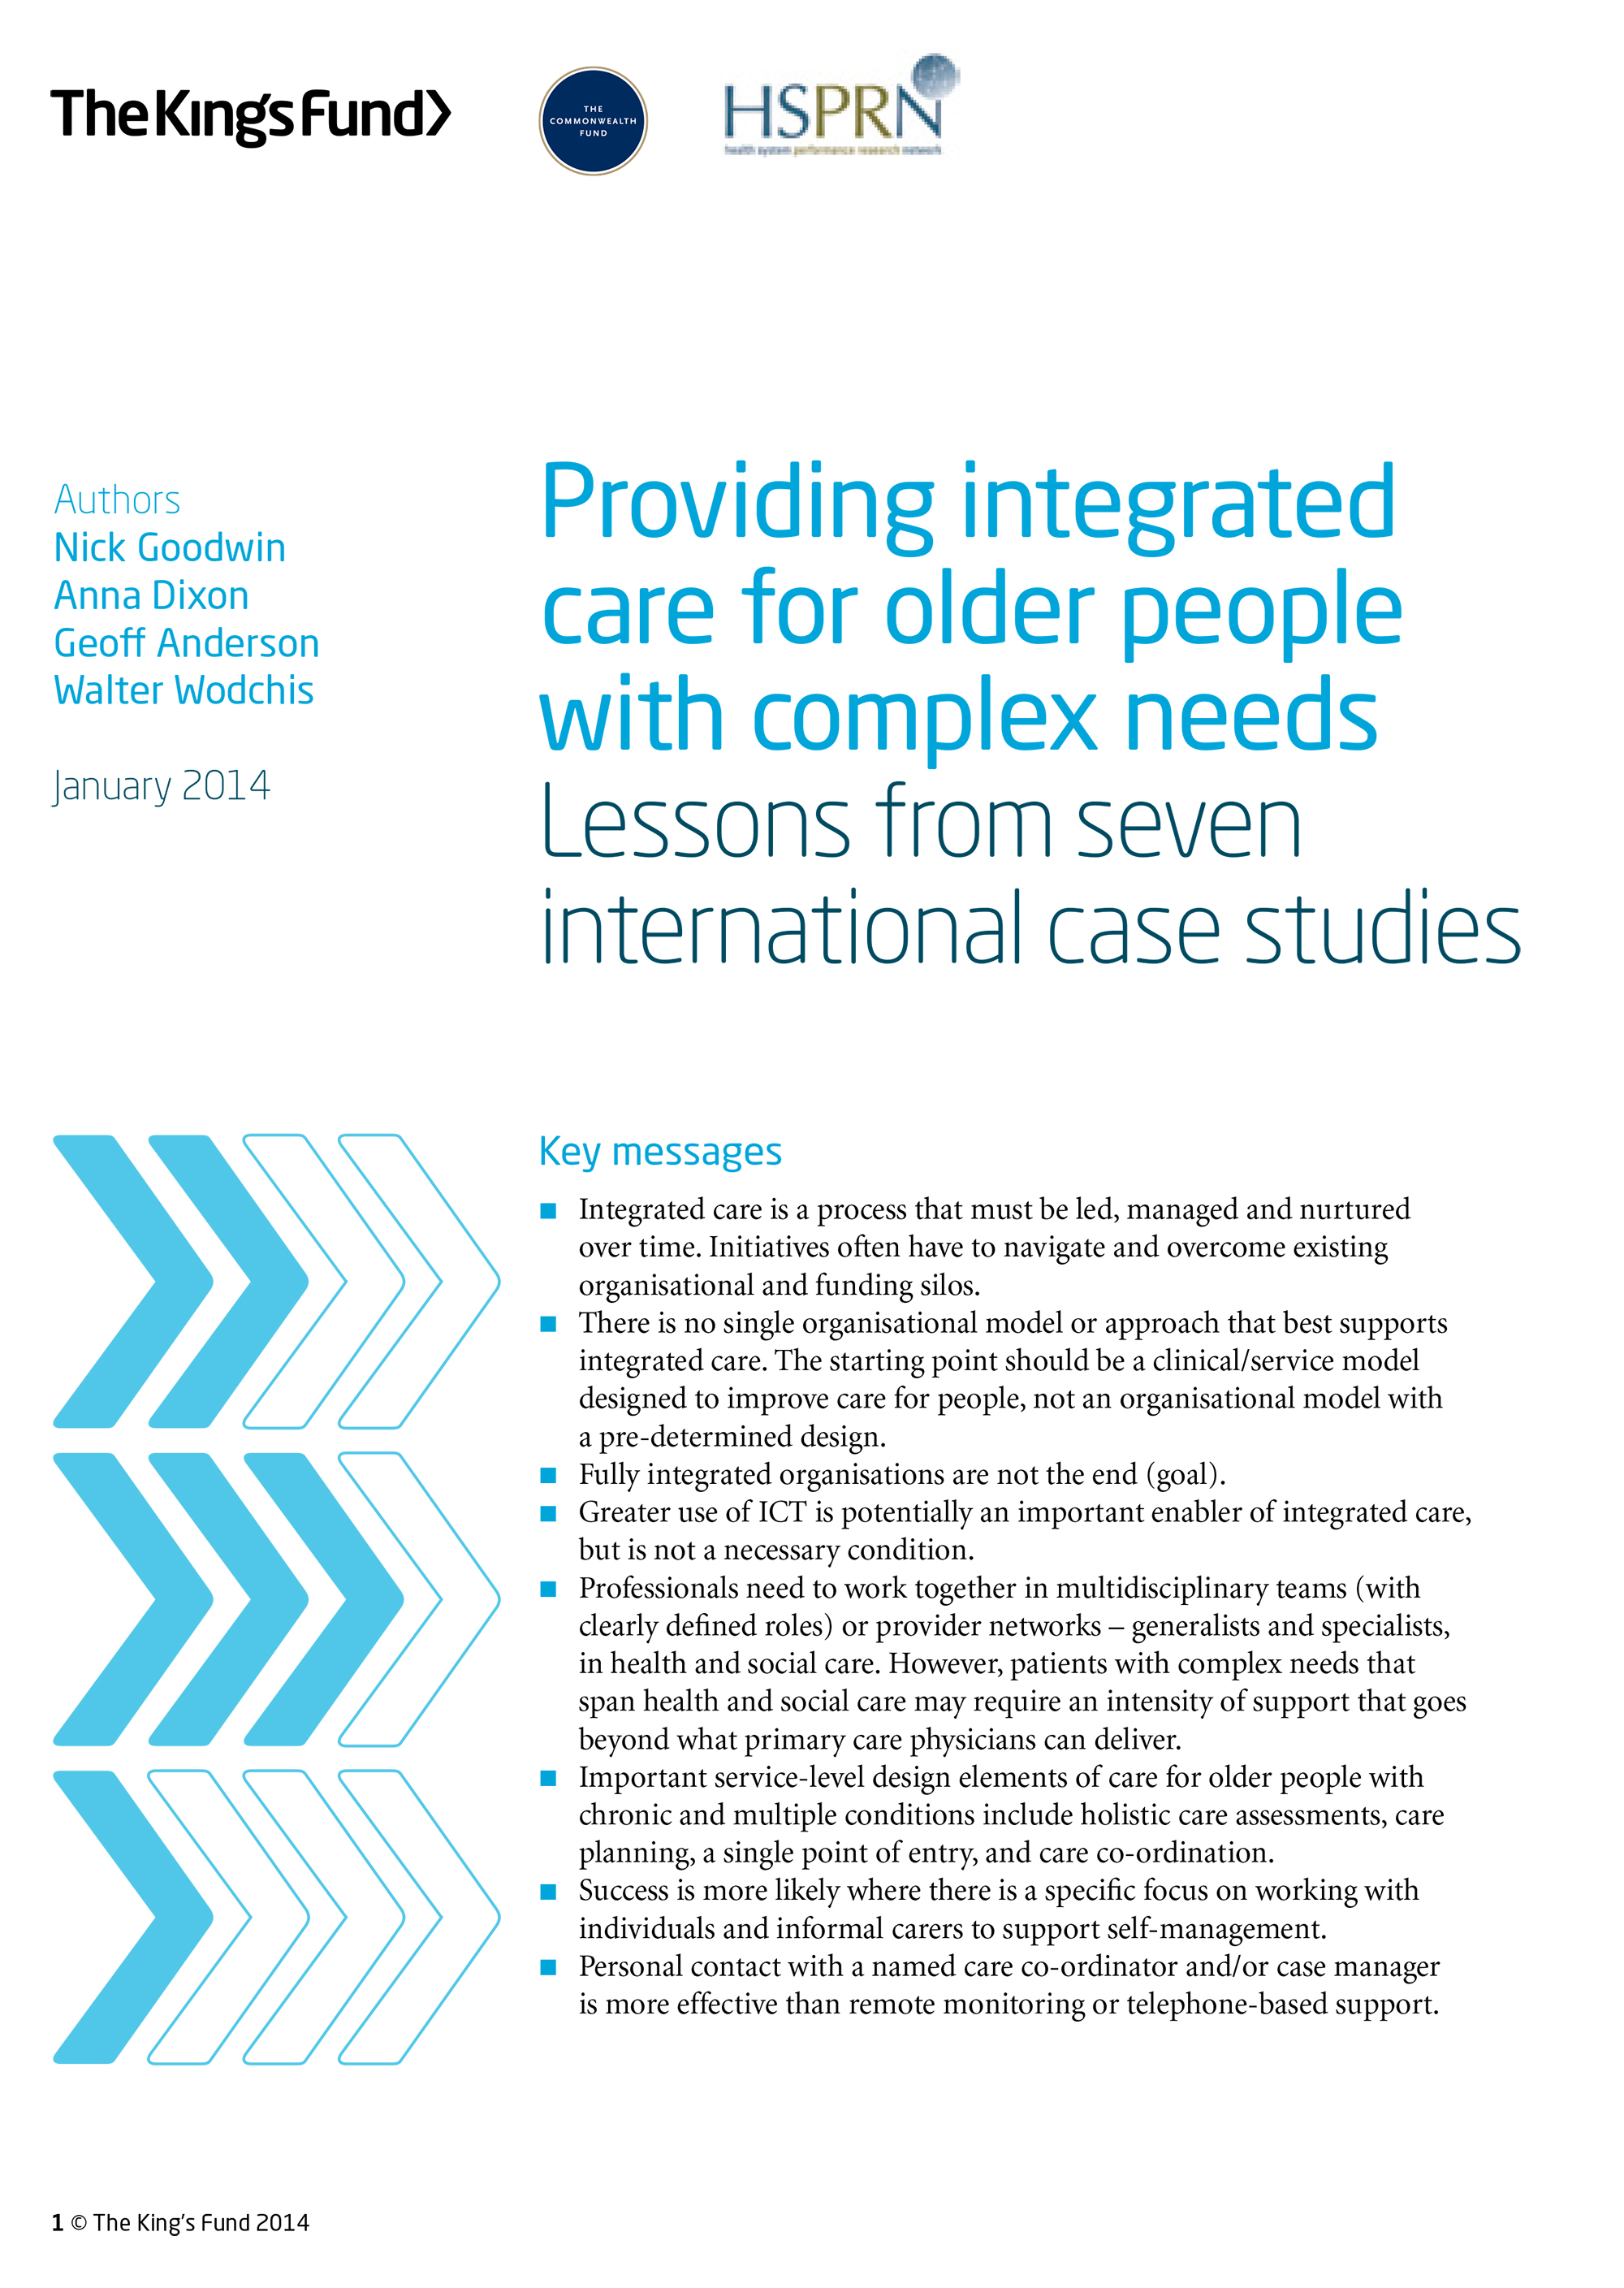 Providing Integrated Care For Older People With Complex